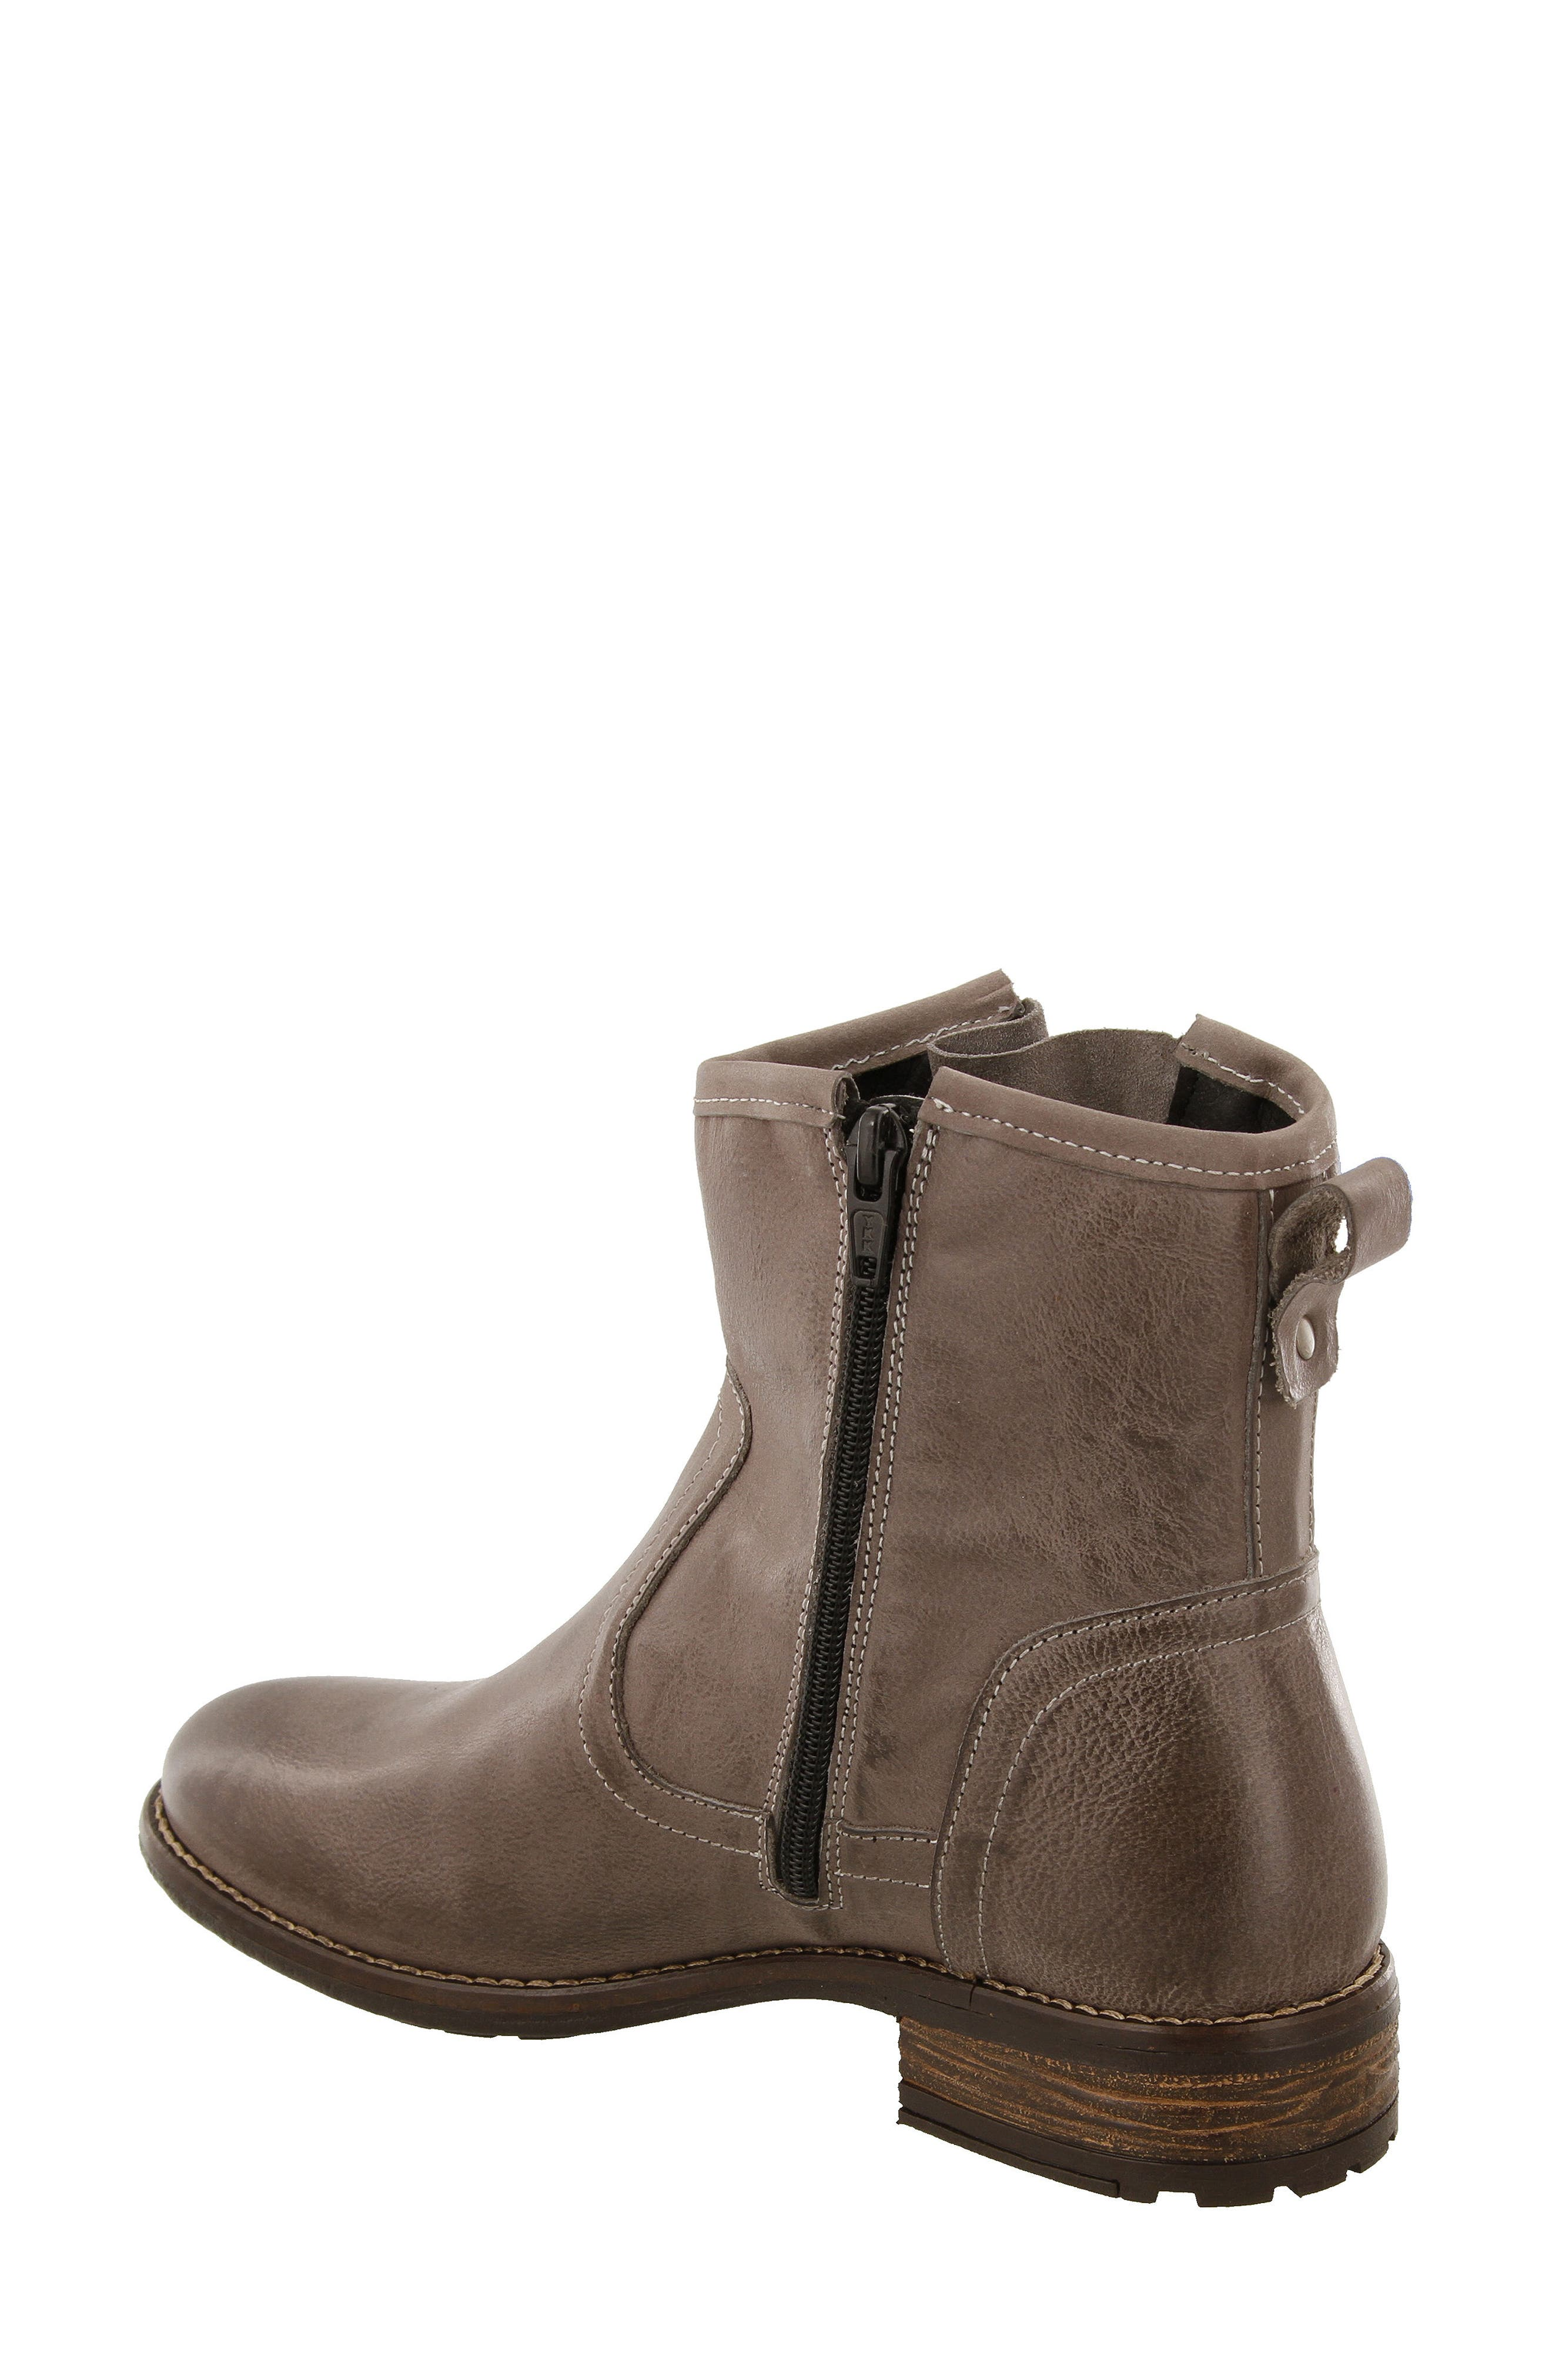 Convoy Boot,                             Alternate thumbnail 2, color,                             Grey Leather